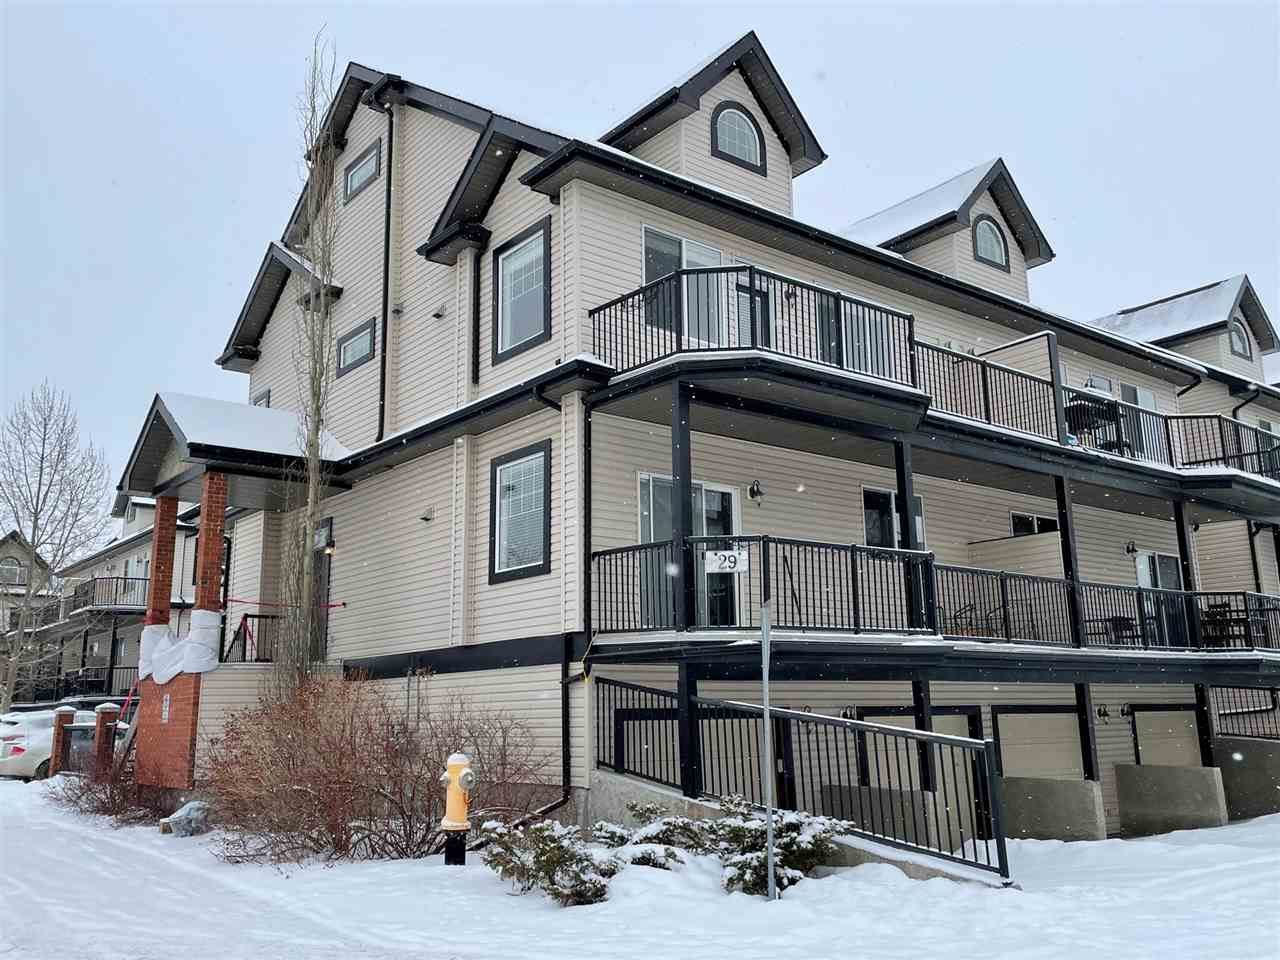 Welcome to South Terwillegar! This spacious Townhouse is ideally located close to schools, shopping & public transportation. Enjoy the open concept with cathedral ceilings & an open loft overlooking the main living area. The living room is warmed by a corner gas FP with large windows allowing for plenty of natural daylight. The kitchen has an abundance of cabinetry, a pantry & a central island island with a breakfast bar. Adjacent is a spacious dining area suitable for a large table. down the hall there are two generous bedrooms & a 4pc bath & laundry. The Master bedroom has a two pc ensuite & a large closet space. Stepping up stairs, is a huge bonus room with plenty of space for family gatherings or an additional bedroom plus a 3pc bath. Off the main floor is a huge balcony with room for patio furniture & BBQ. Downstairs, you have access to the attached garage & storage room.